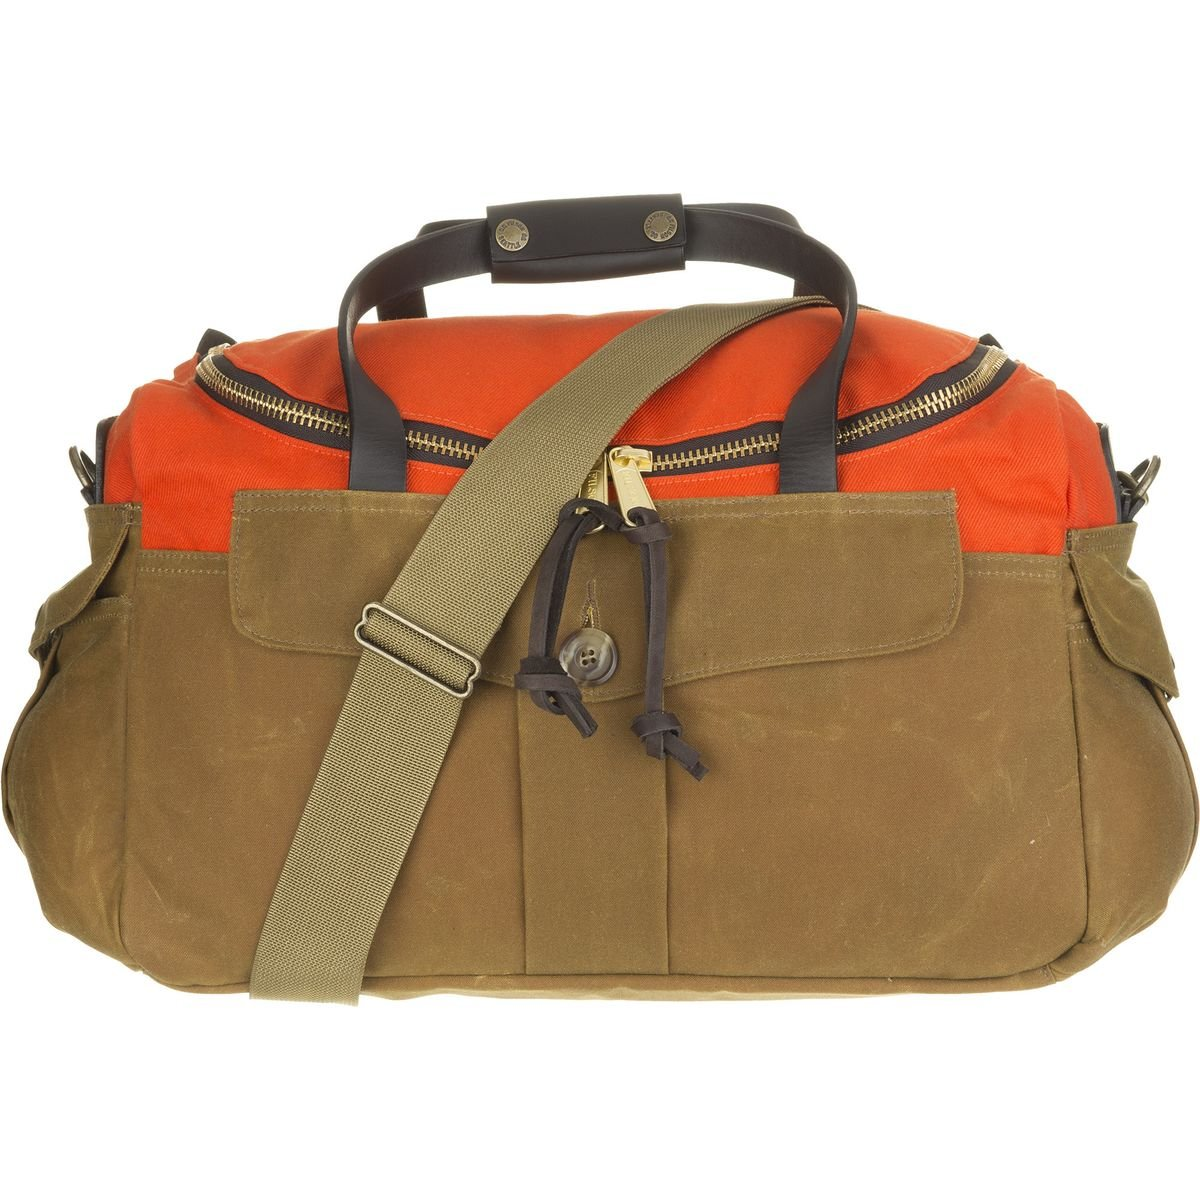 Amazon.com   Filson Original Sportsman Heritage Bag Orange Dark Tan ... acbbab595d